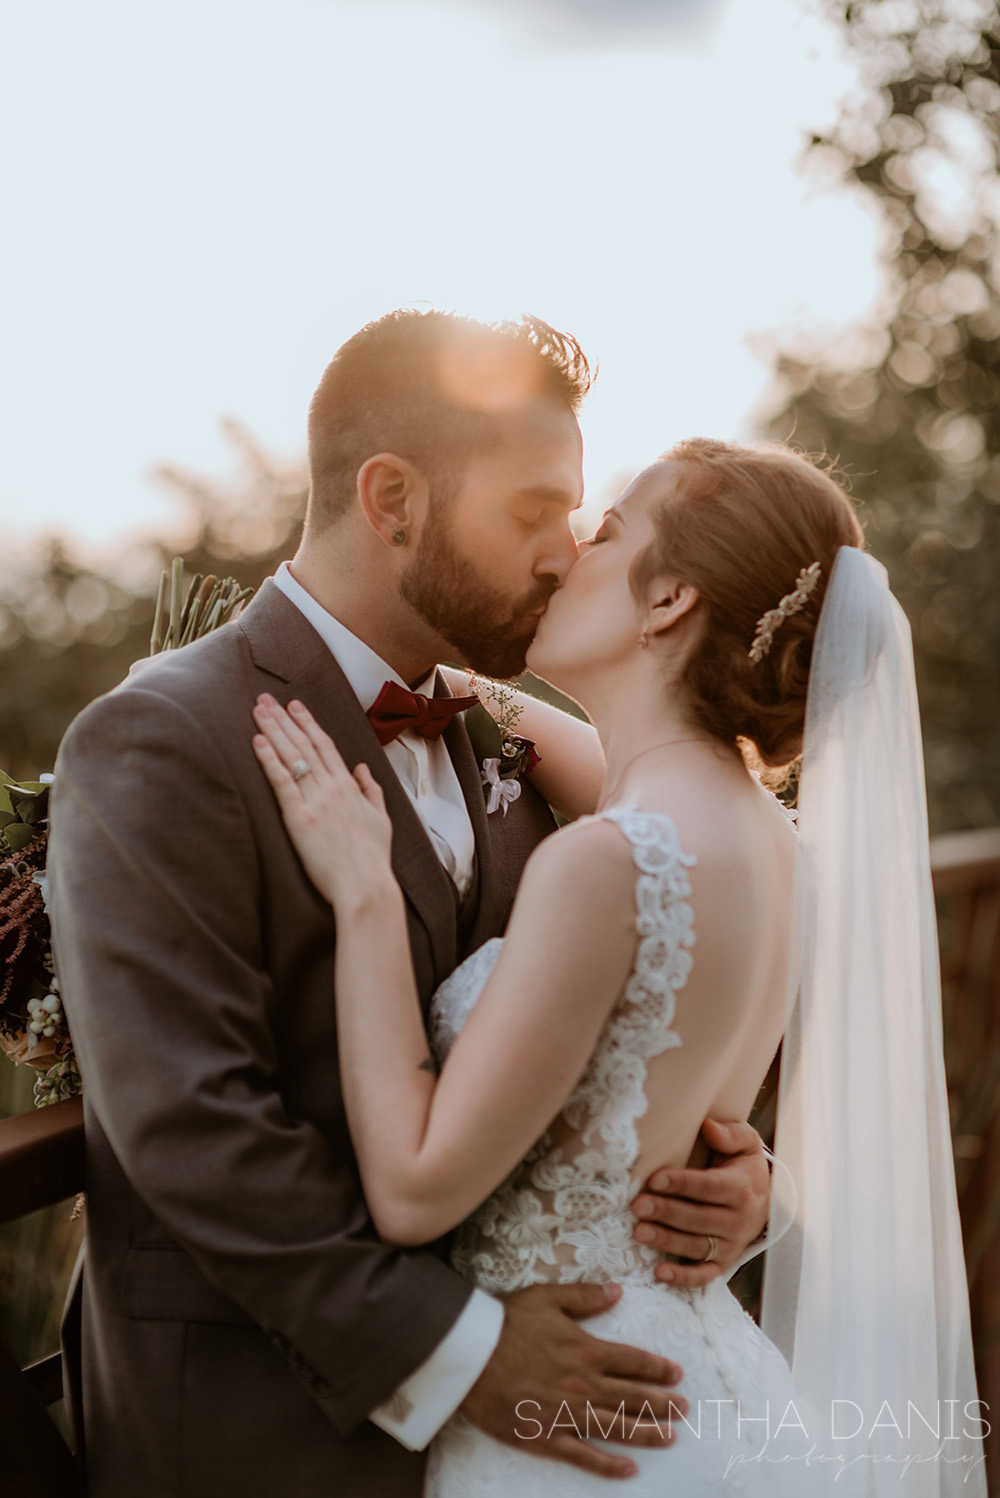 When the light is just right, the groom takes his wife and kisses her passionately.